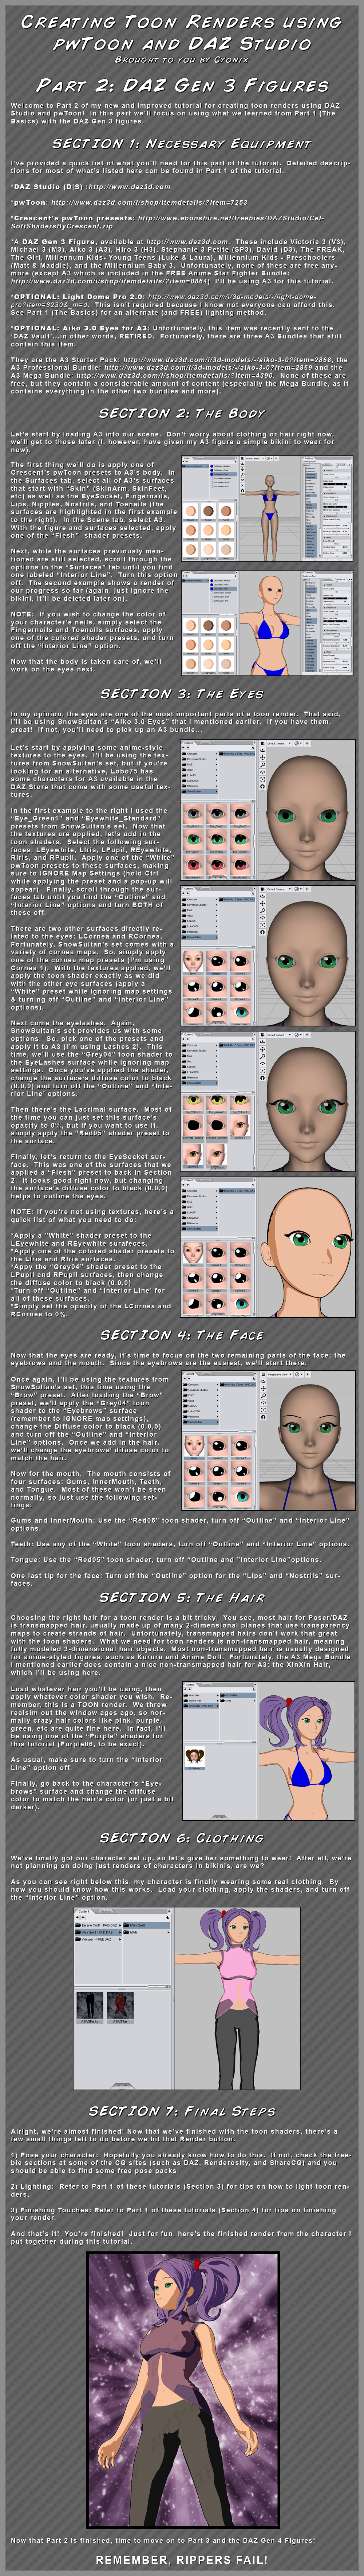 pwToon Tutorial 2 - DAZ Gen 3 by CyonixGFX on DeviantArt